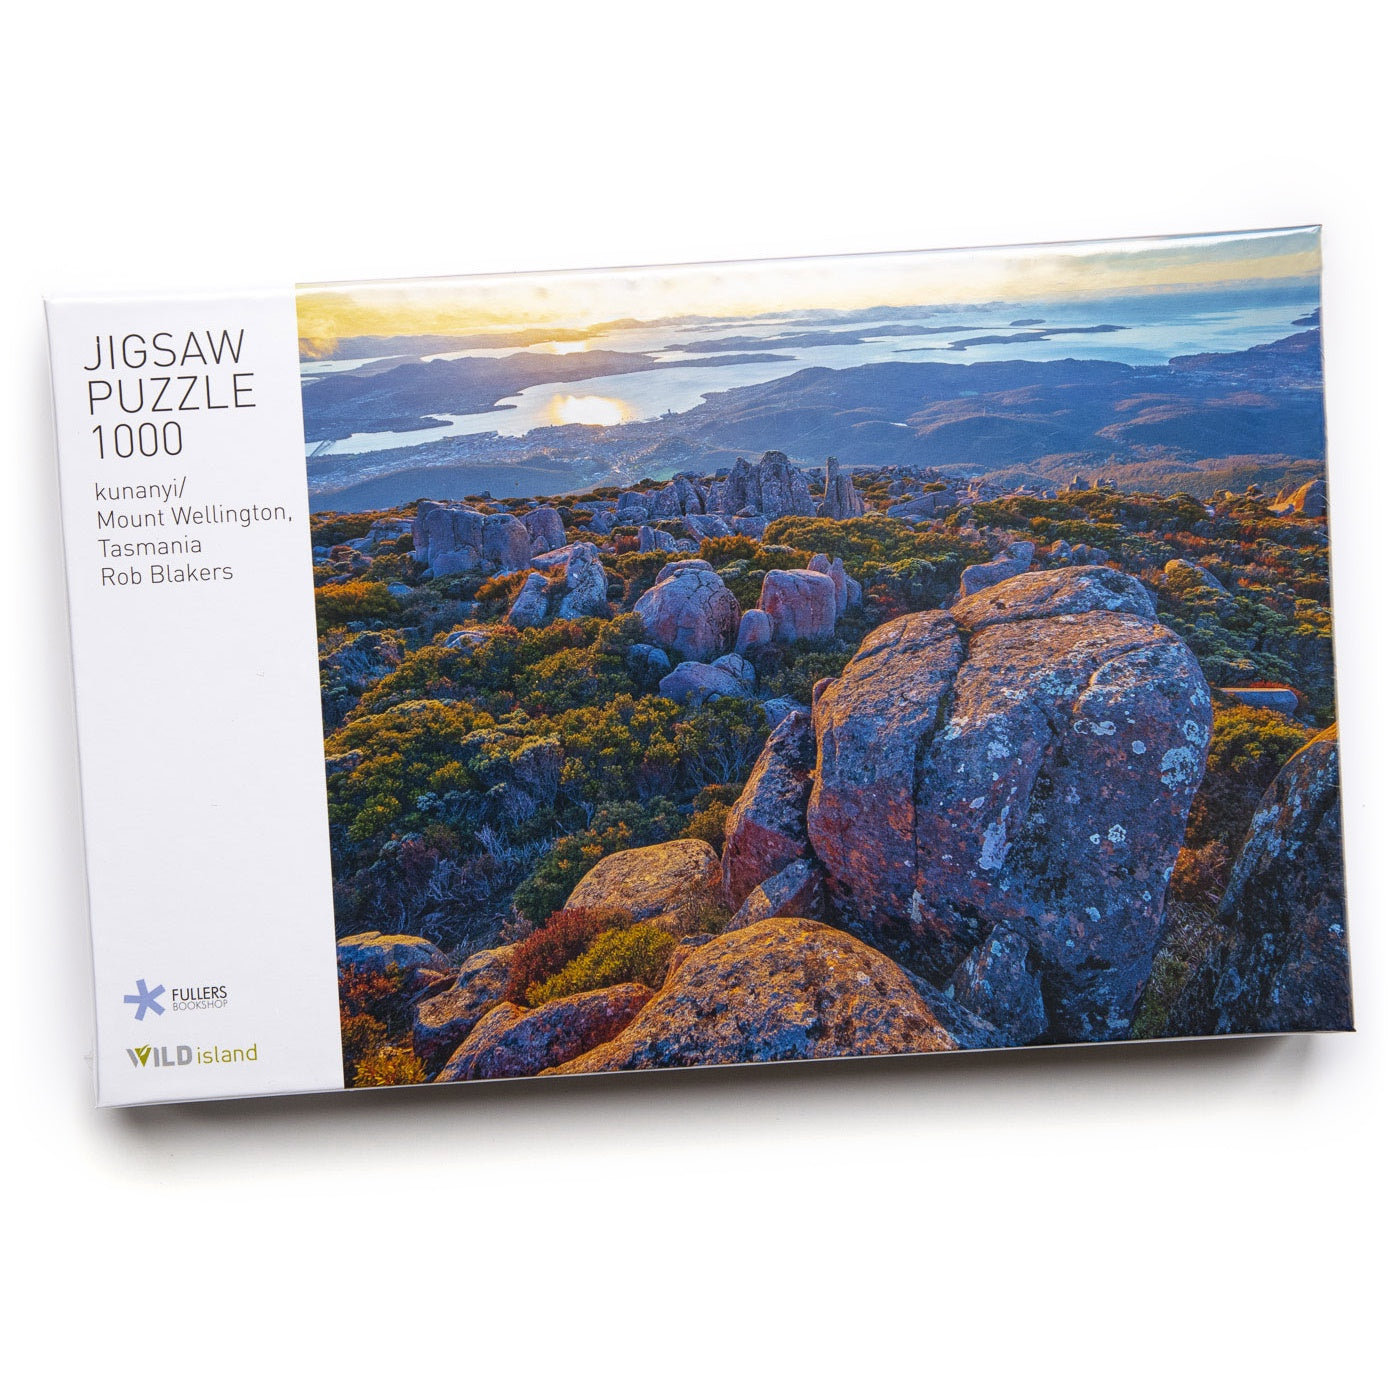 Rob Blakers Jigsaw Puzzle - kunanyi/Mt Wellington